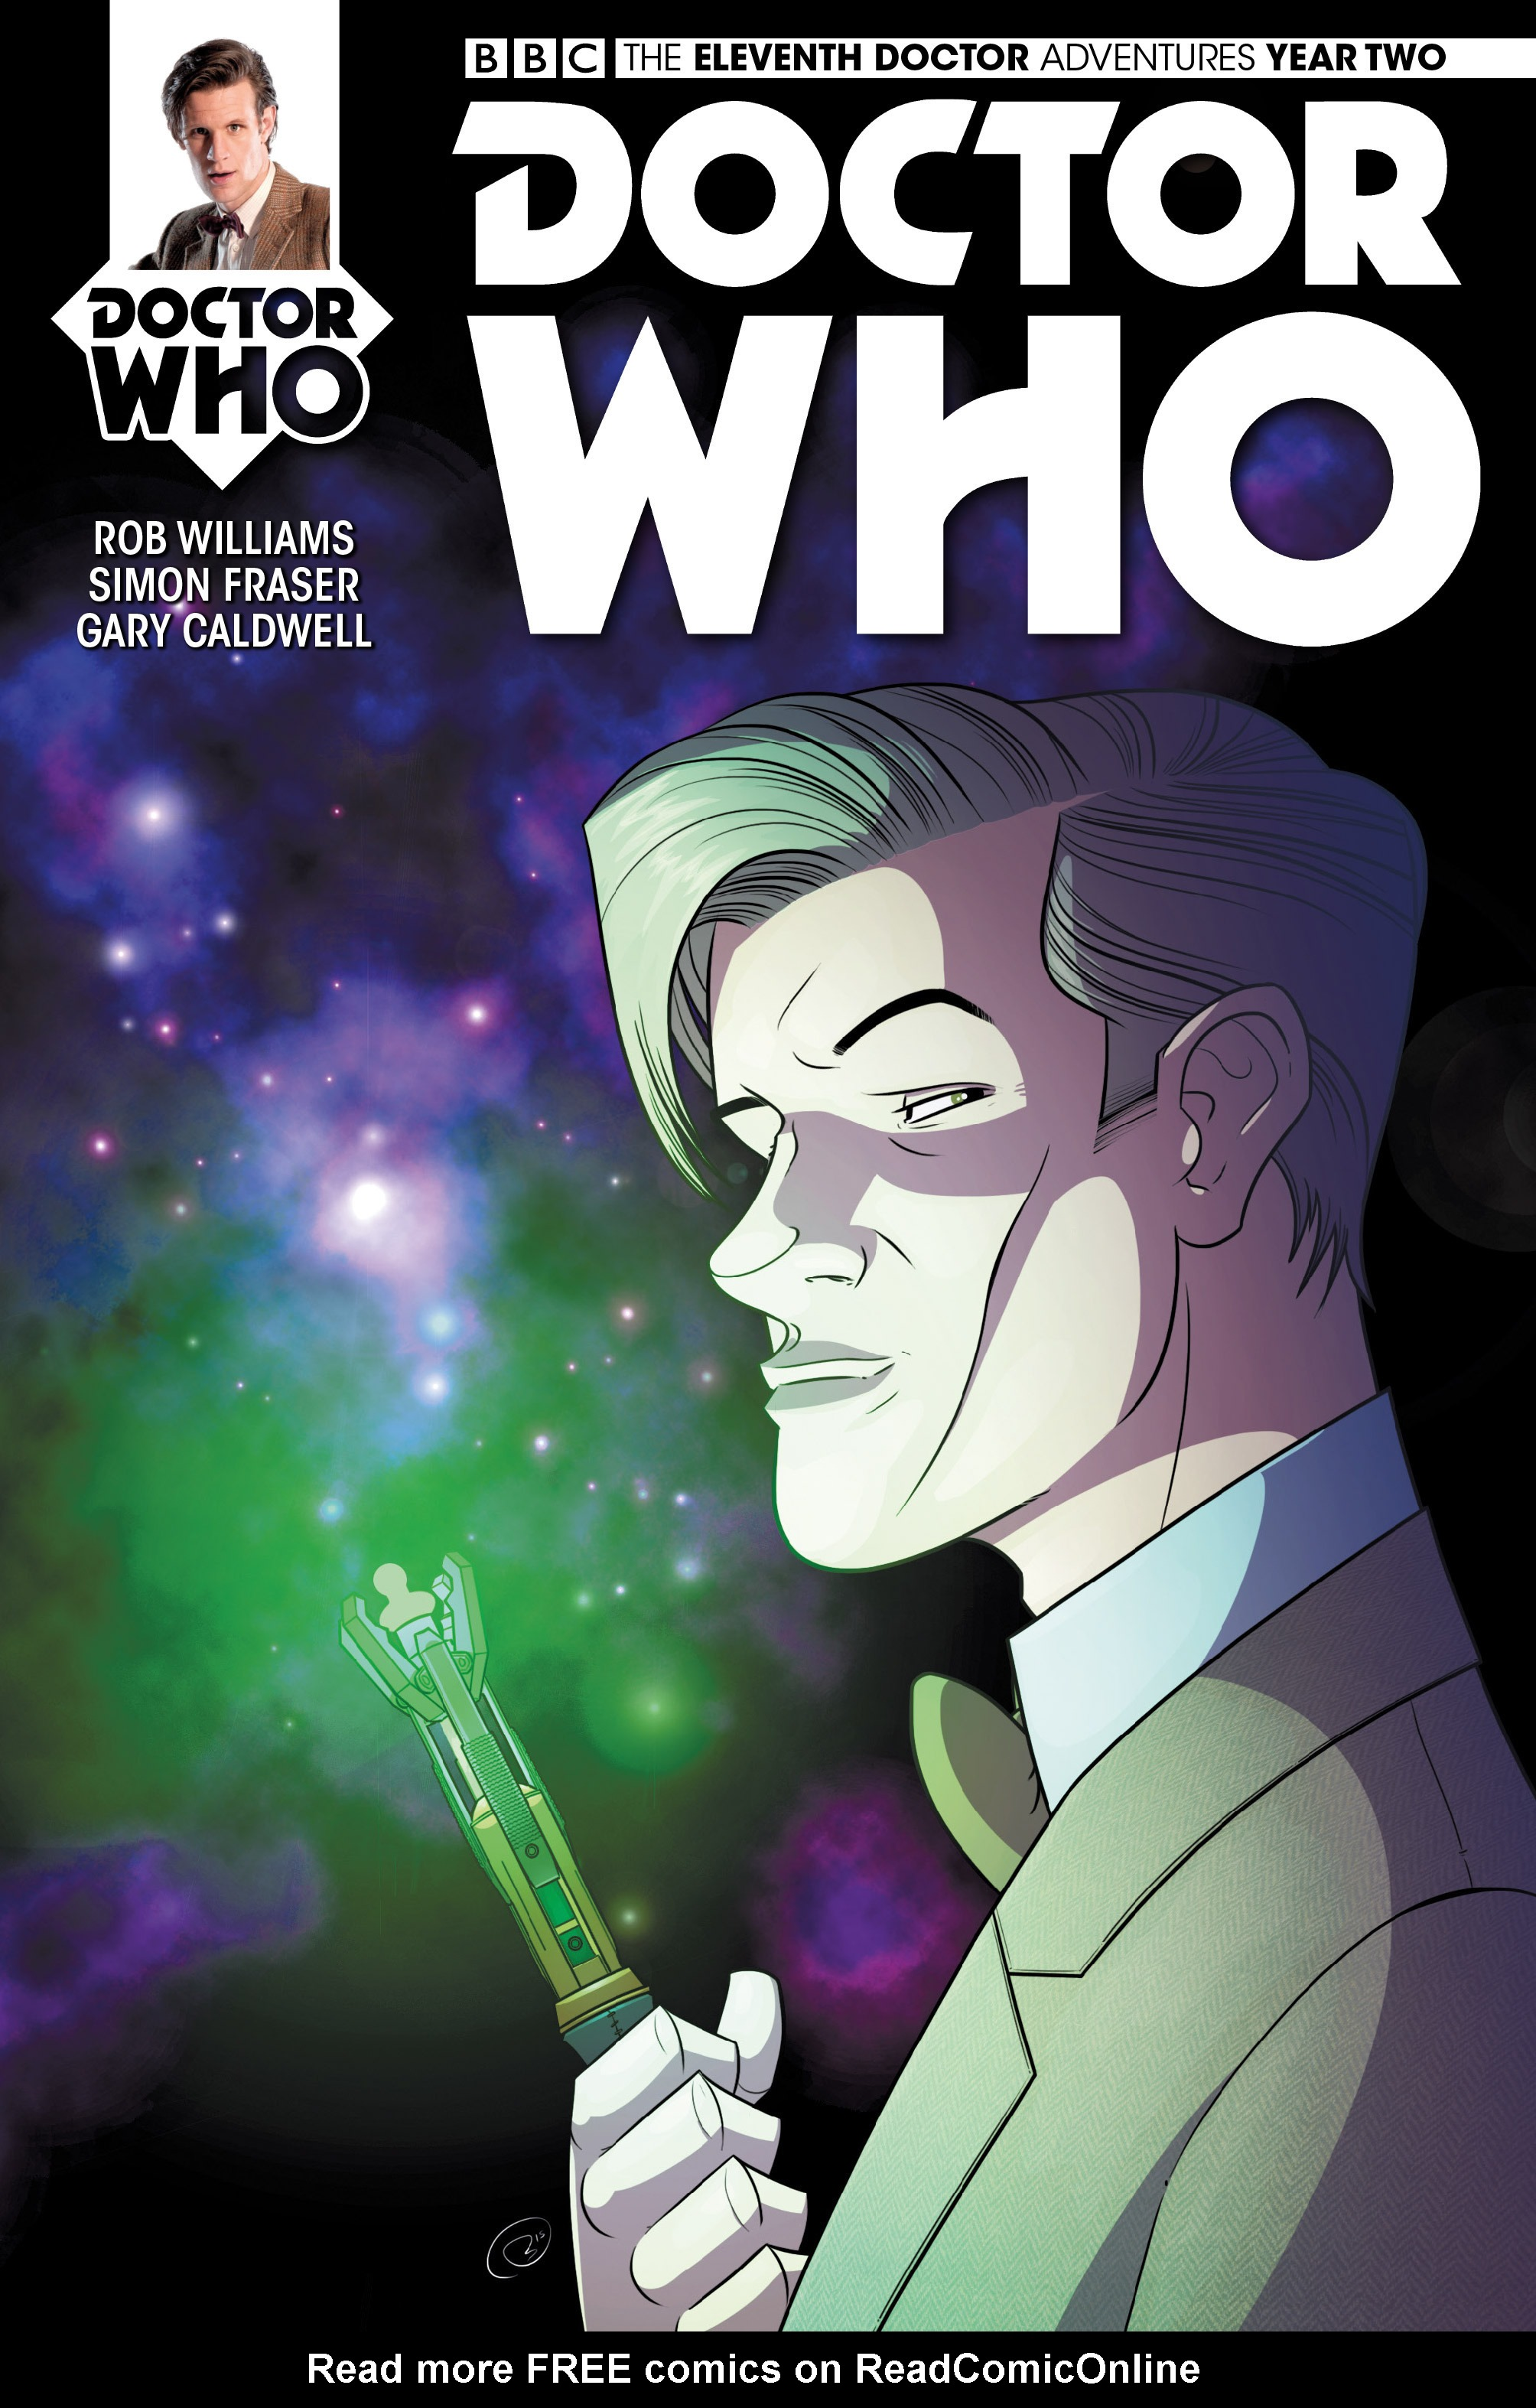 Doctor Who: The Eleventh Doctor Year Two 10 Page 1